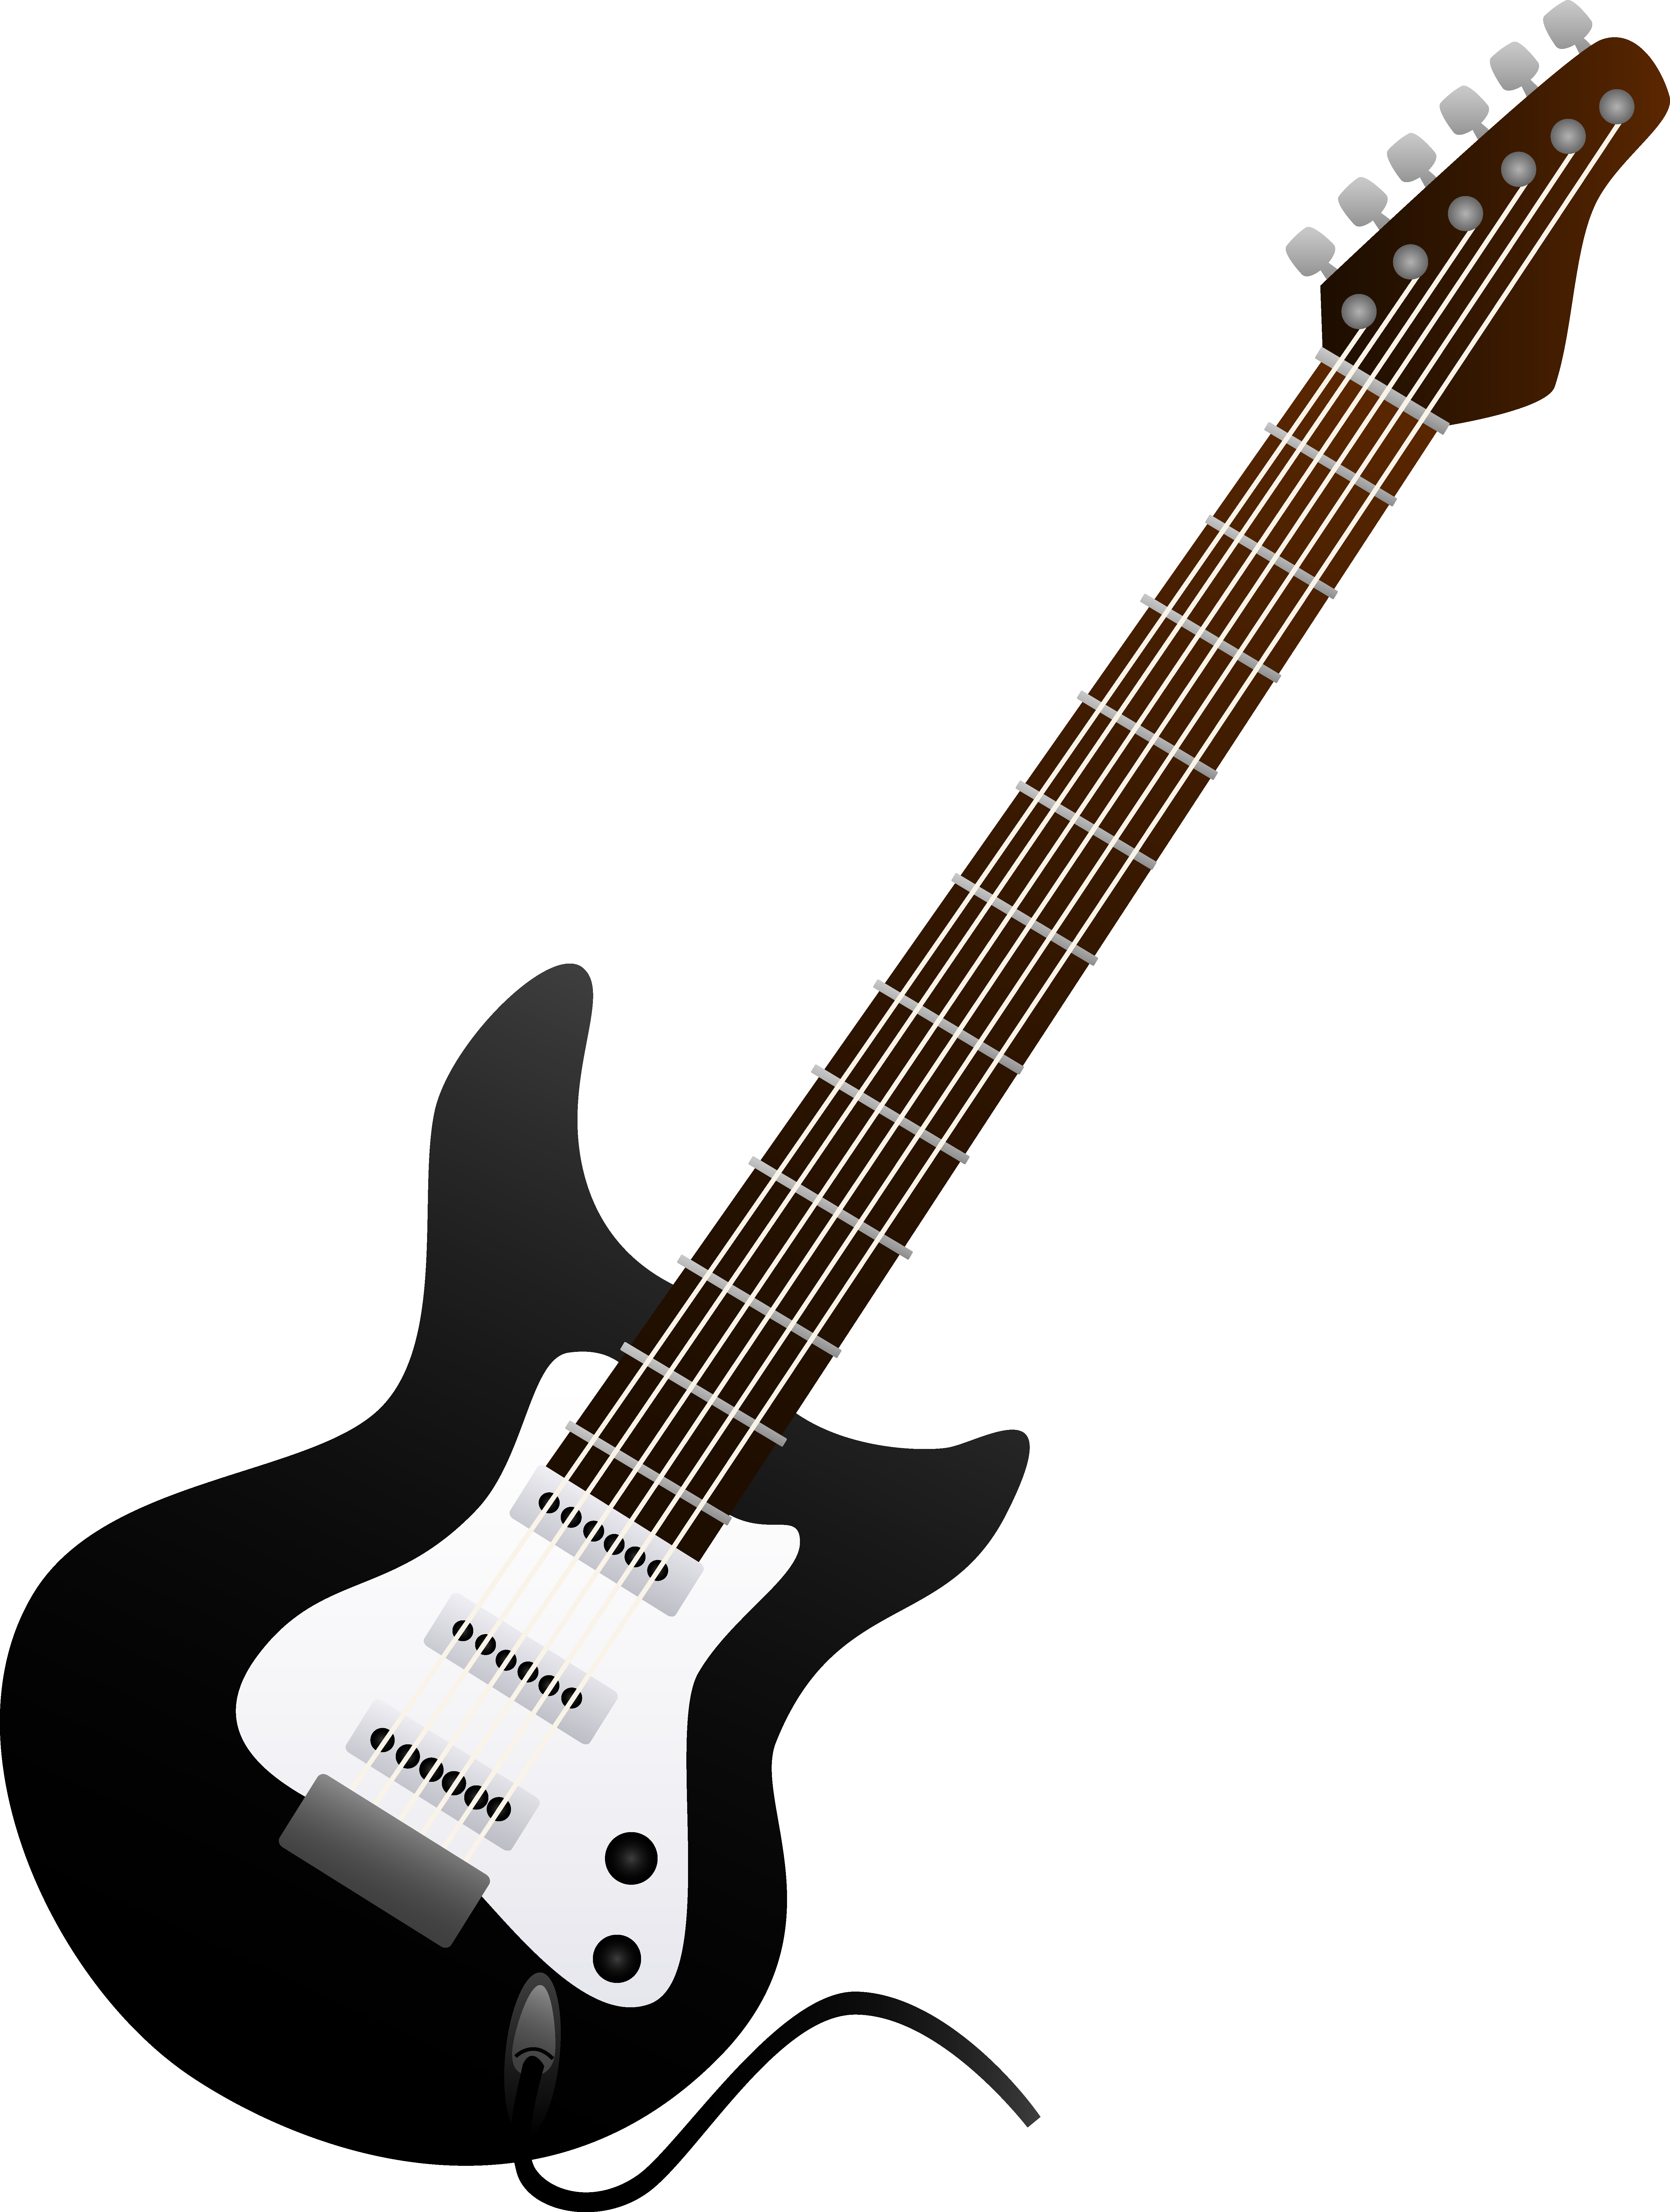 Guitar  black and white bass guitar clipart black and white free